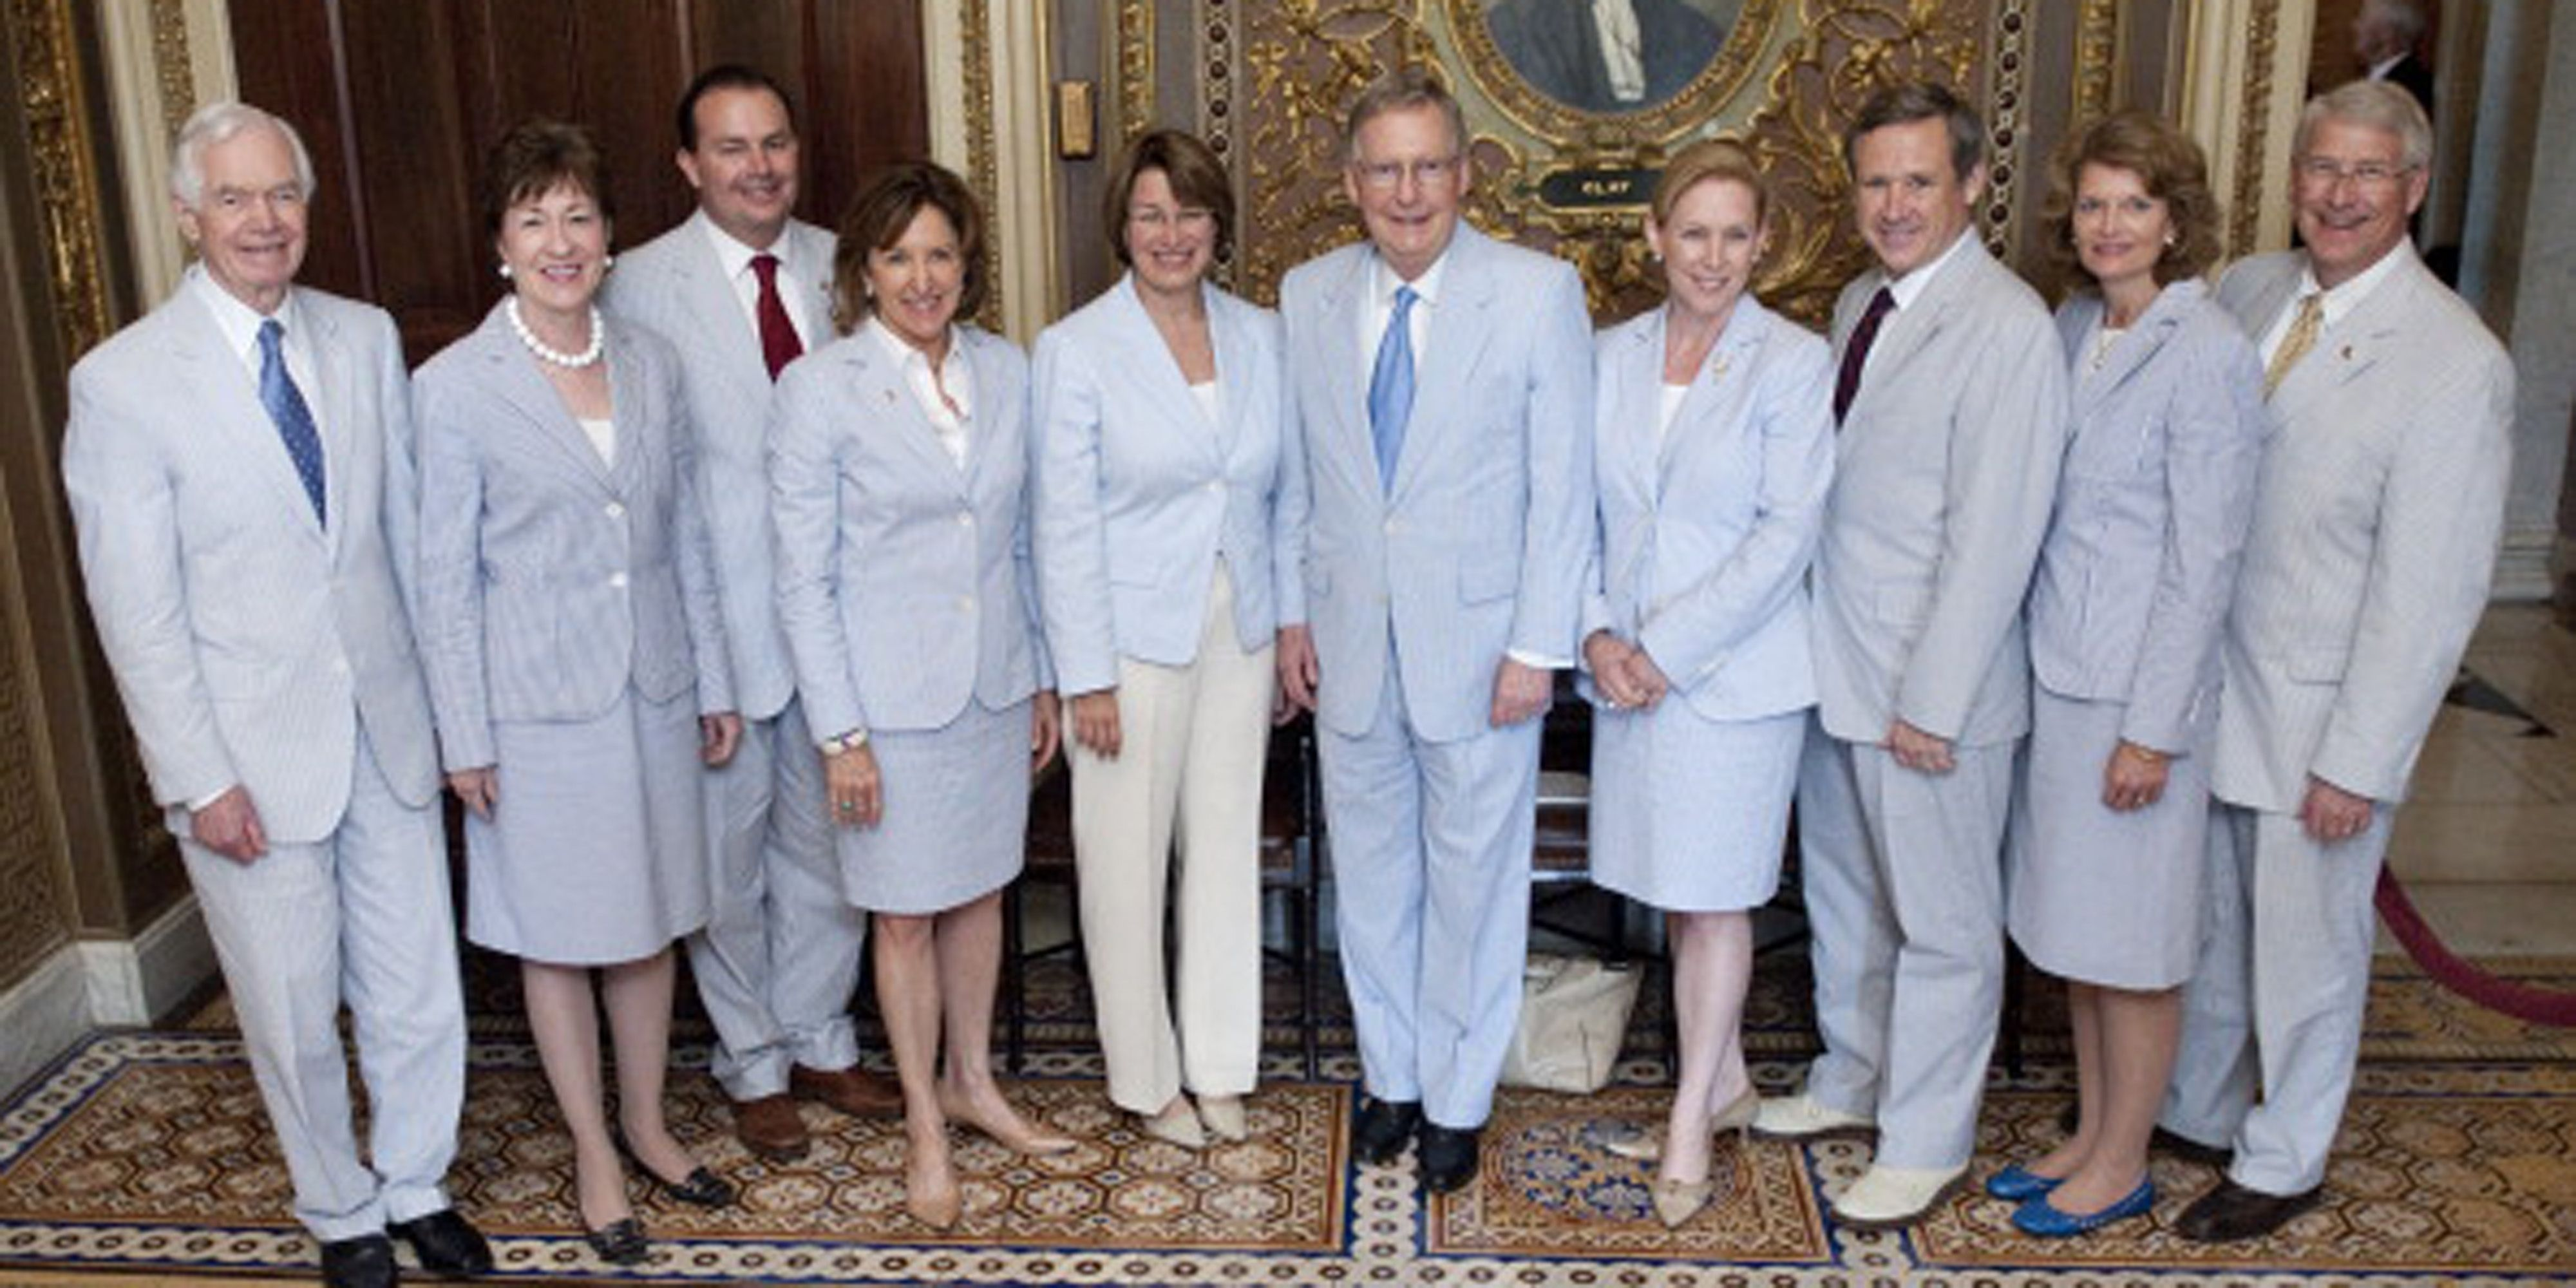 UNITED STATES – JUNE 23: Senators wearing seersucker suits pose for a group photo in the Senate Reception Room in the Capitol on Thursday, June 23, 2011. From left are Senators Thad Cochran, Susan Collins, Mike Lee, Kay Hagan, Amy Klobuchar, Mitch McConnell, Kirsten Gillibrand, Mark Kirk, Lisa Murkowski, and Roger Wicker. The third thursday of June is traditionally called Seersucker Thursday. (Photo By Bill Clark/Roll Call)